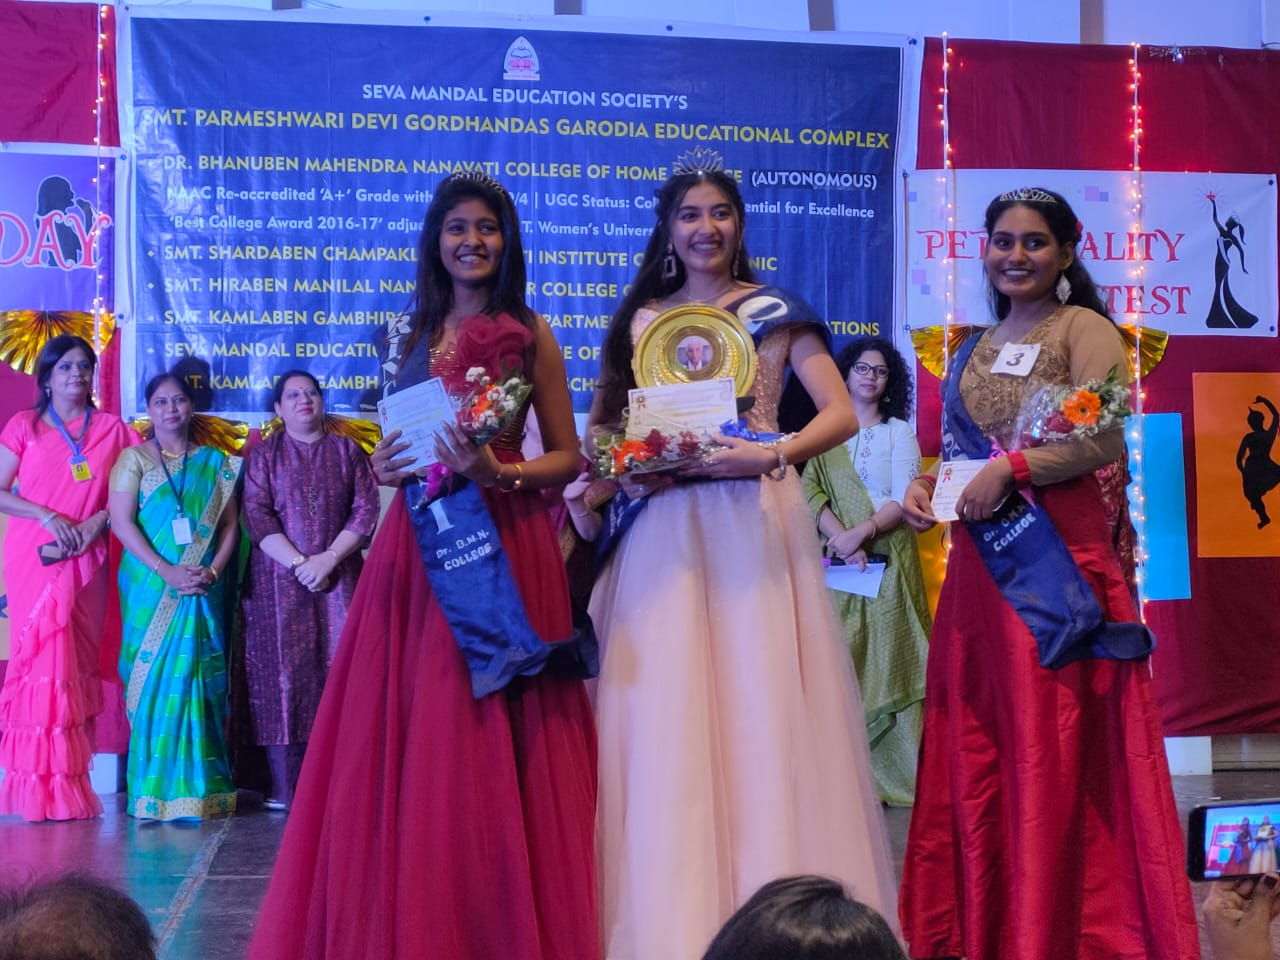 Winners of the Annual Day- Personality Contest held on 31st January 2020